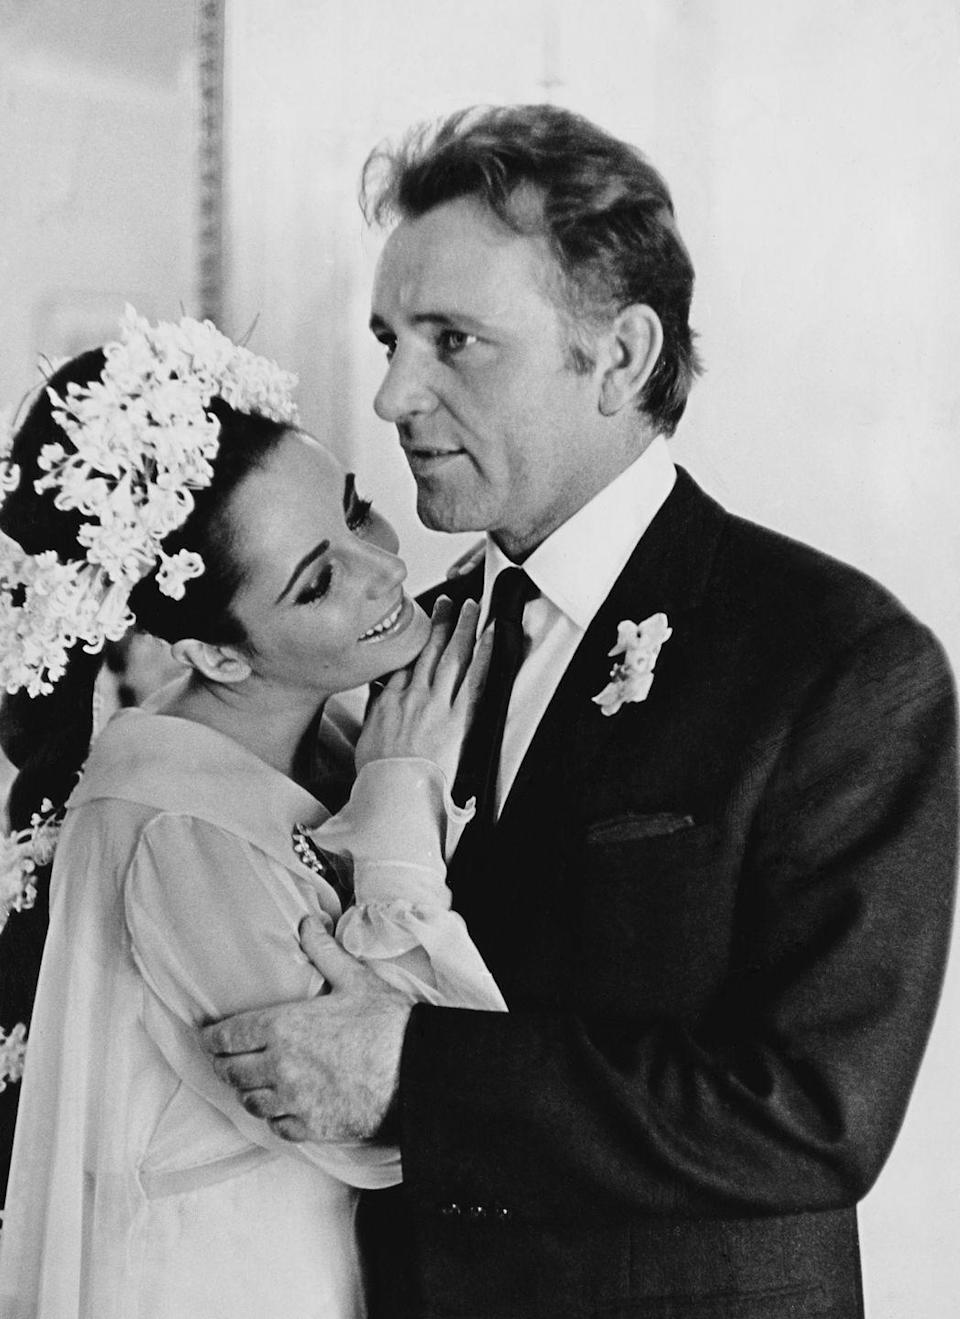 <p>Elizabeth wore a marigold, long sleeve dress and an elaborate white flowered hairpiece for her wedding to Richard Burton in Montreal, Canada. </p>